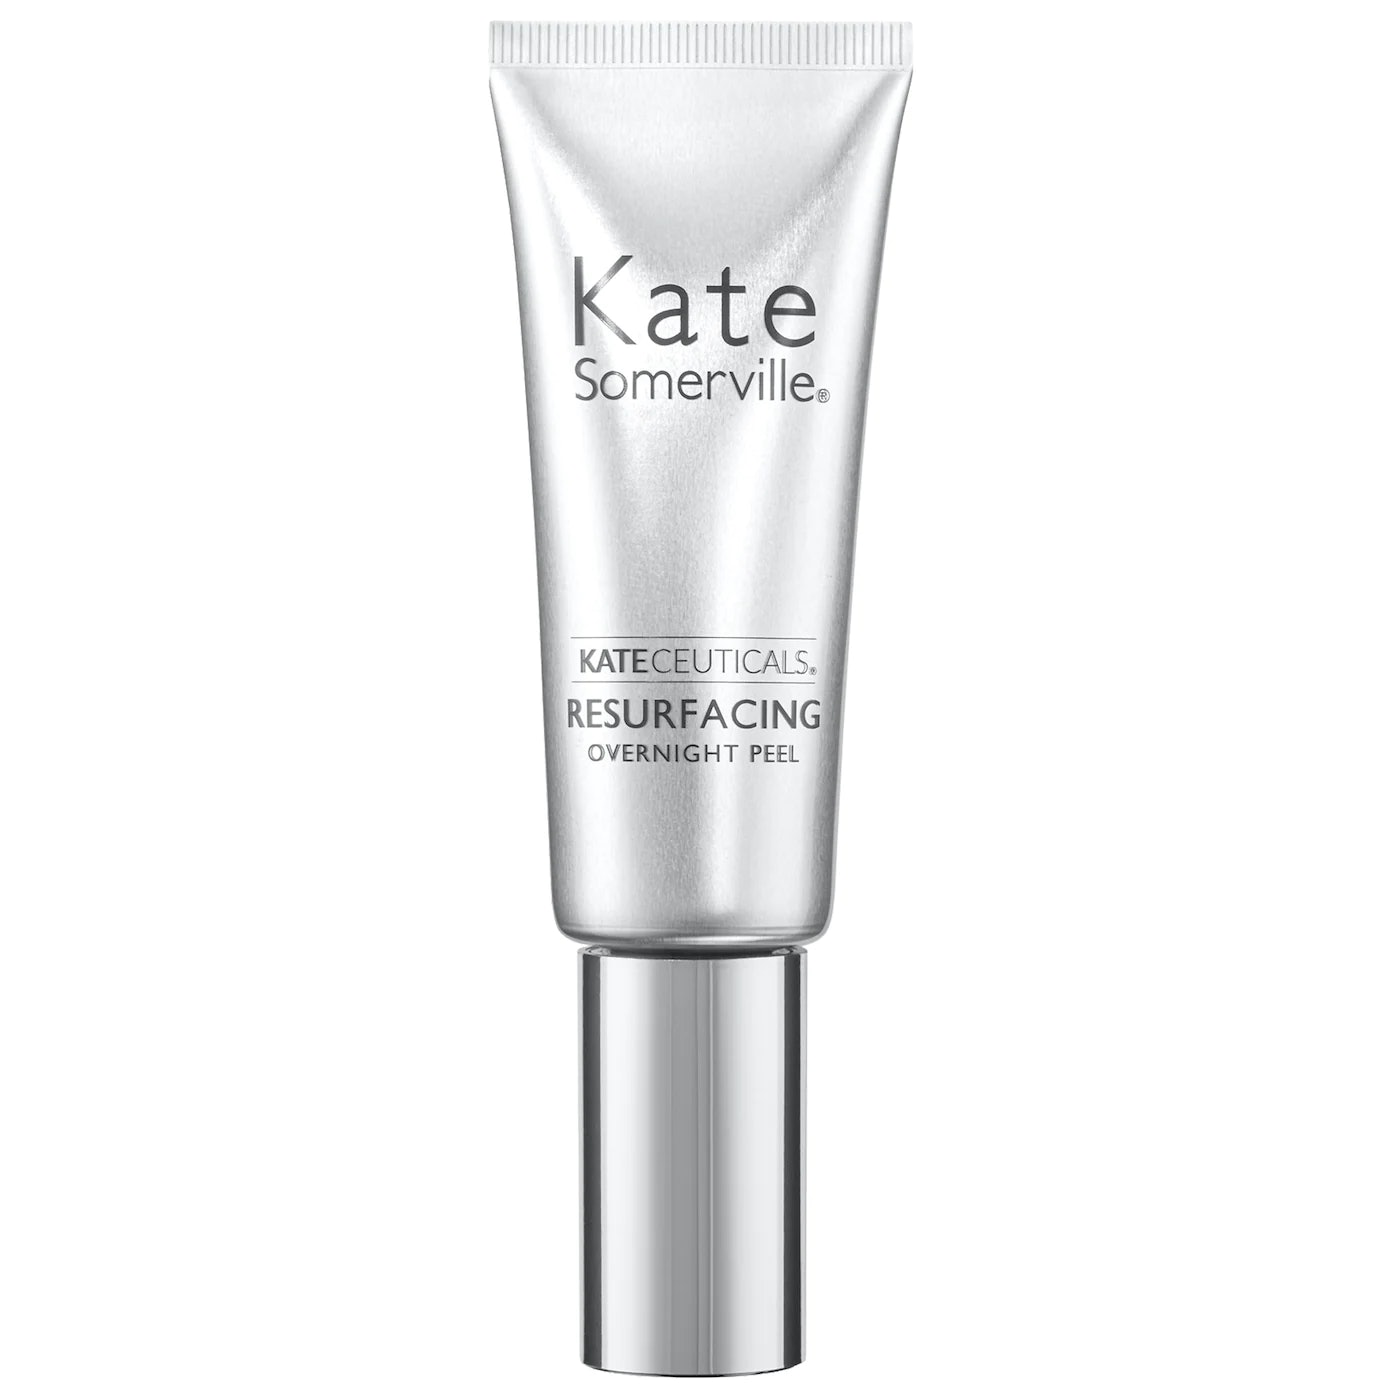 Kate Somerville - KateCeuticals Resurfacing Overnight Peel with Glycolic Acid, Retinol and Niacinamide